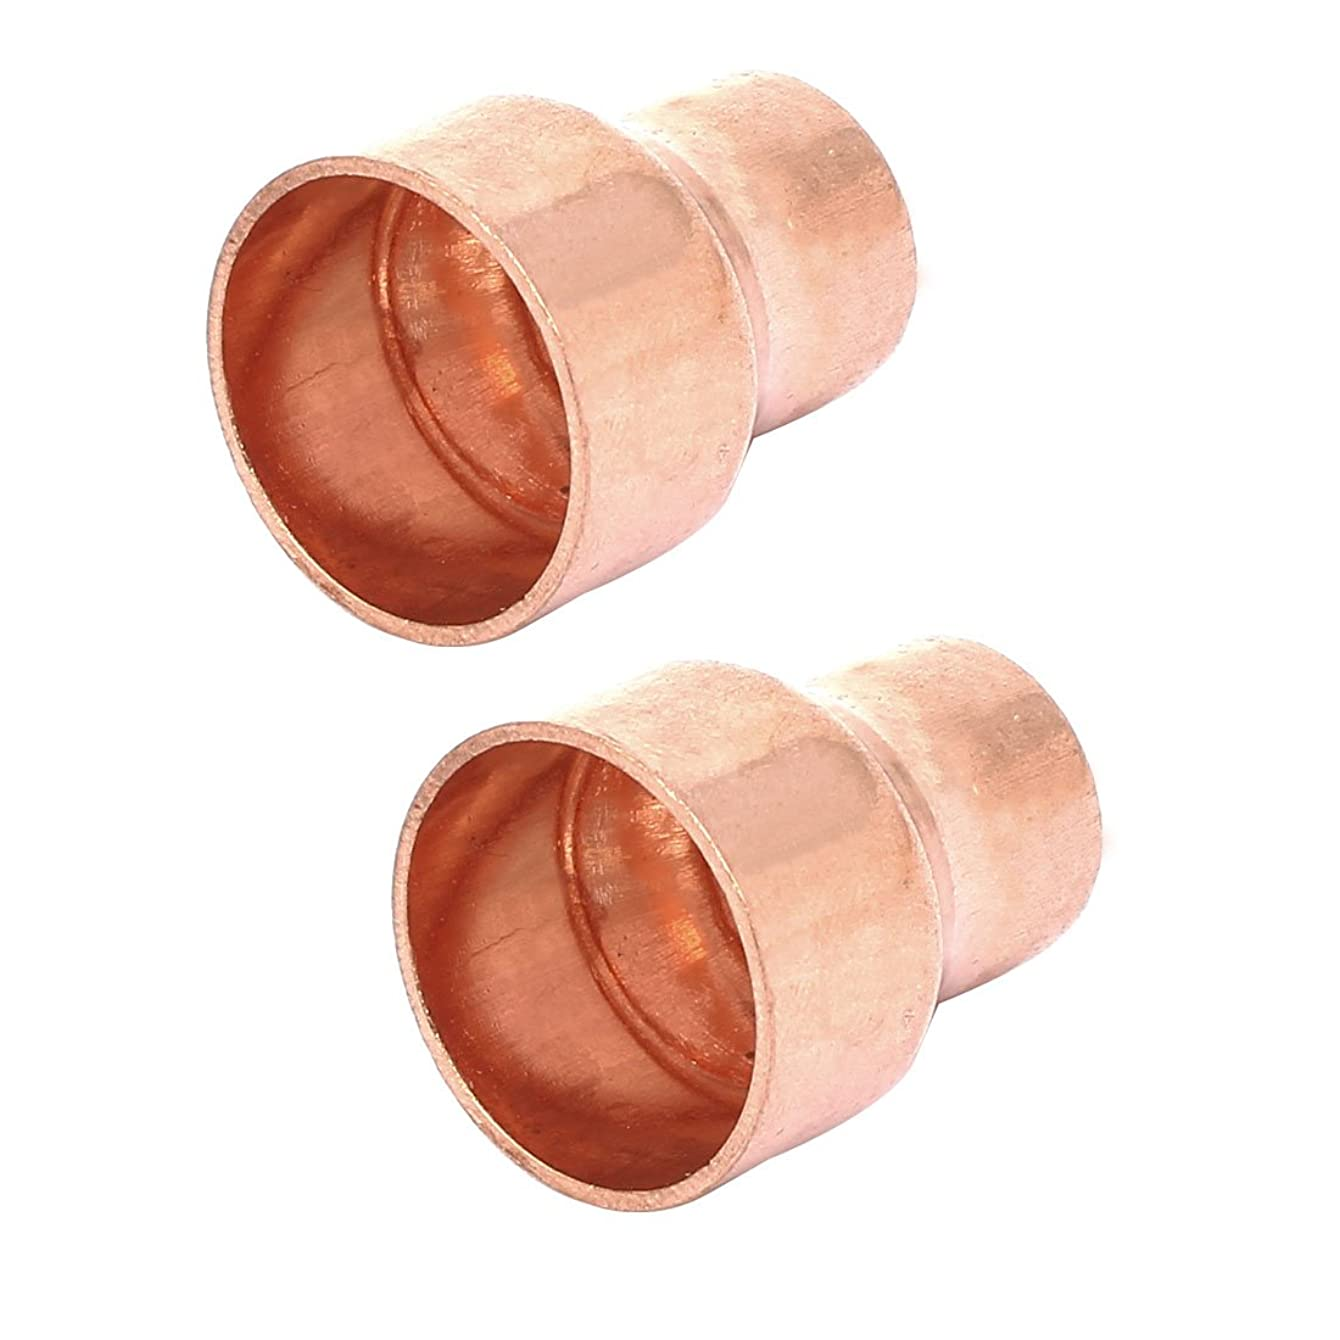 Aexit 19mmx12.7mm Tube Civil Equipment Hardware Accessories Air Conditioner Copper Reducer Straight Fittings 2pcs Model:24as399qo685